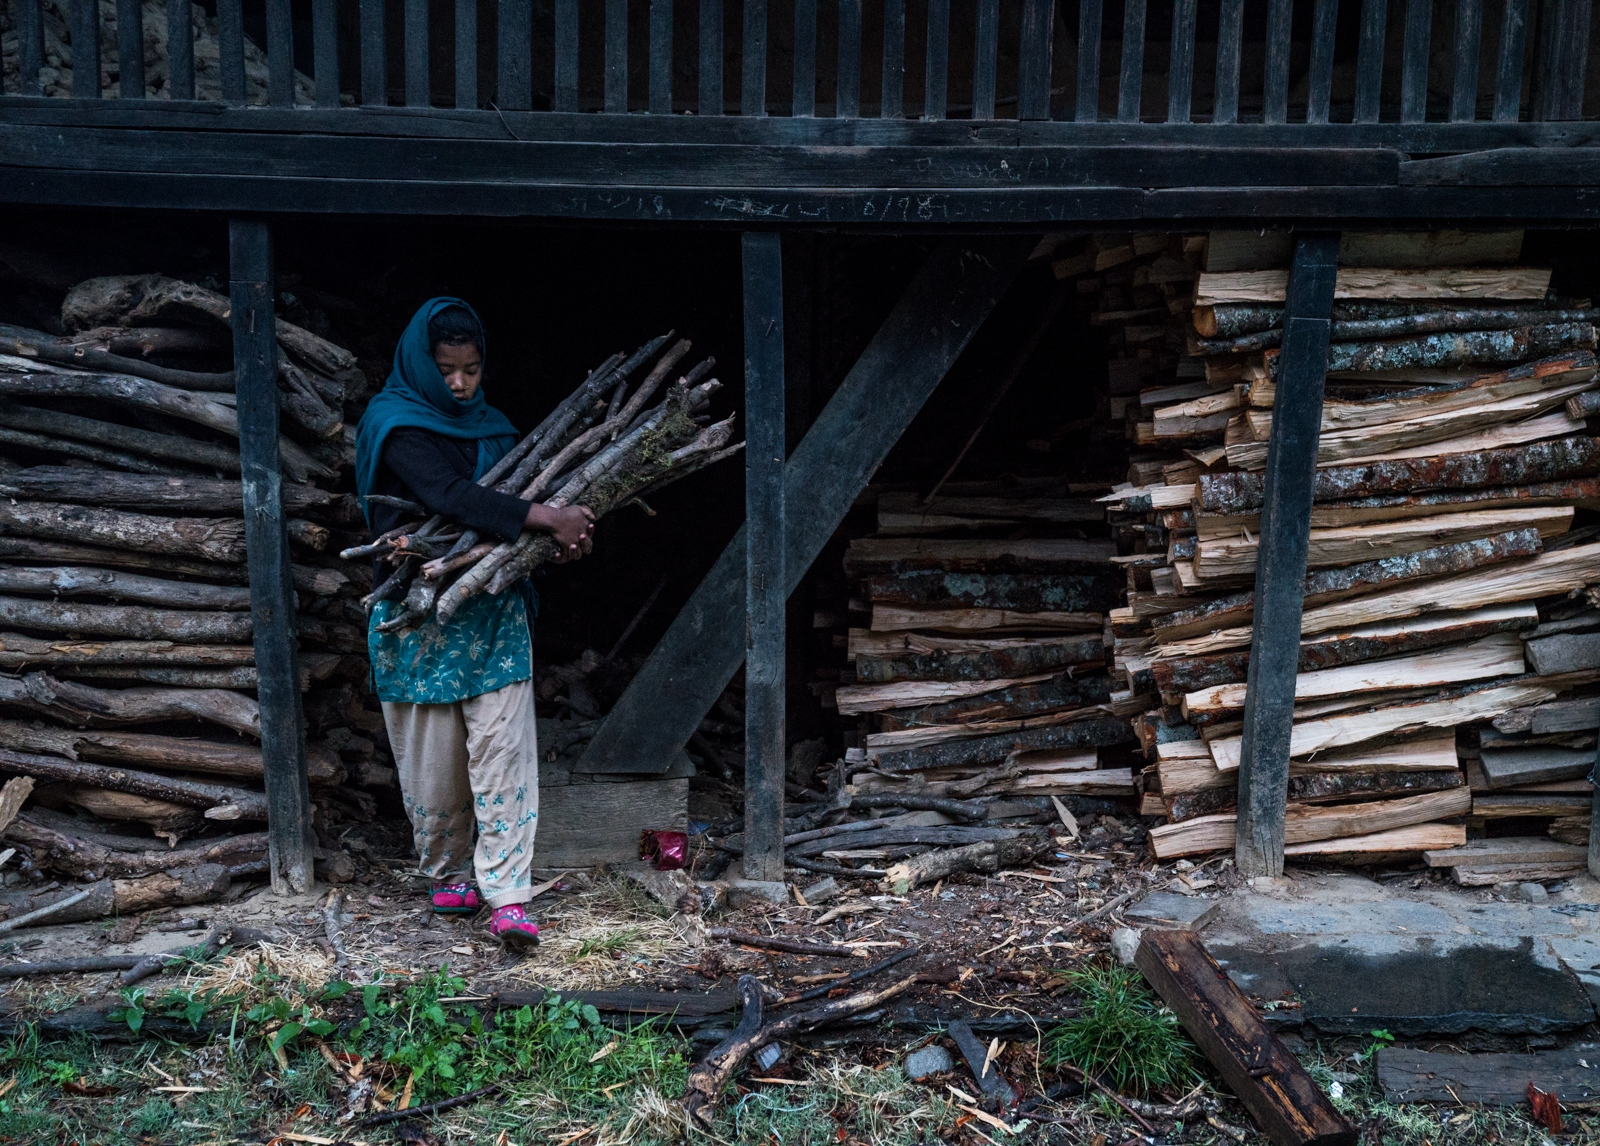 A woman carries firewood from a storage home to use for cooking. The majority of the fuel used in the Khumbu is sourced from local forested regions.